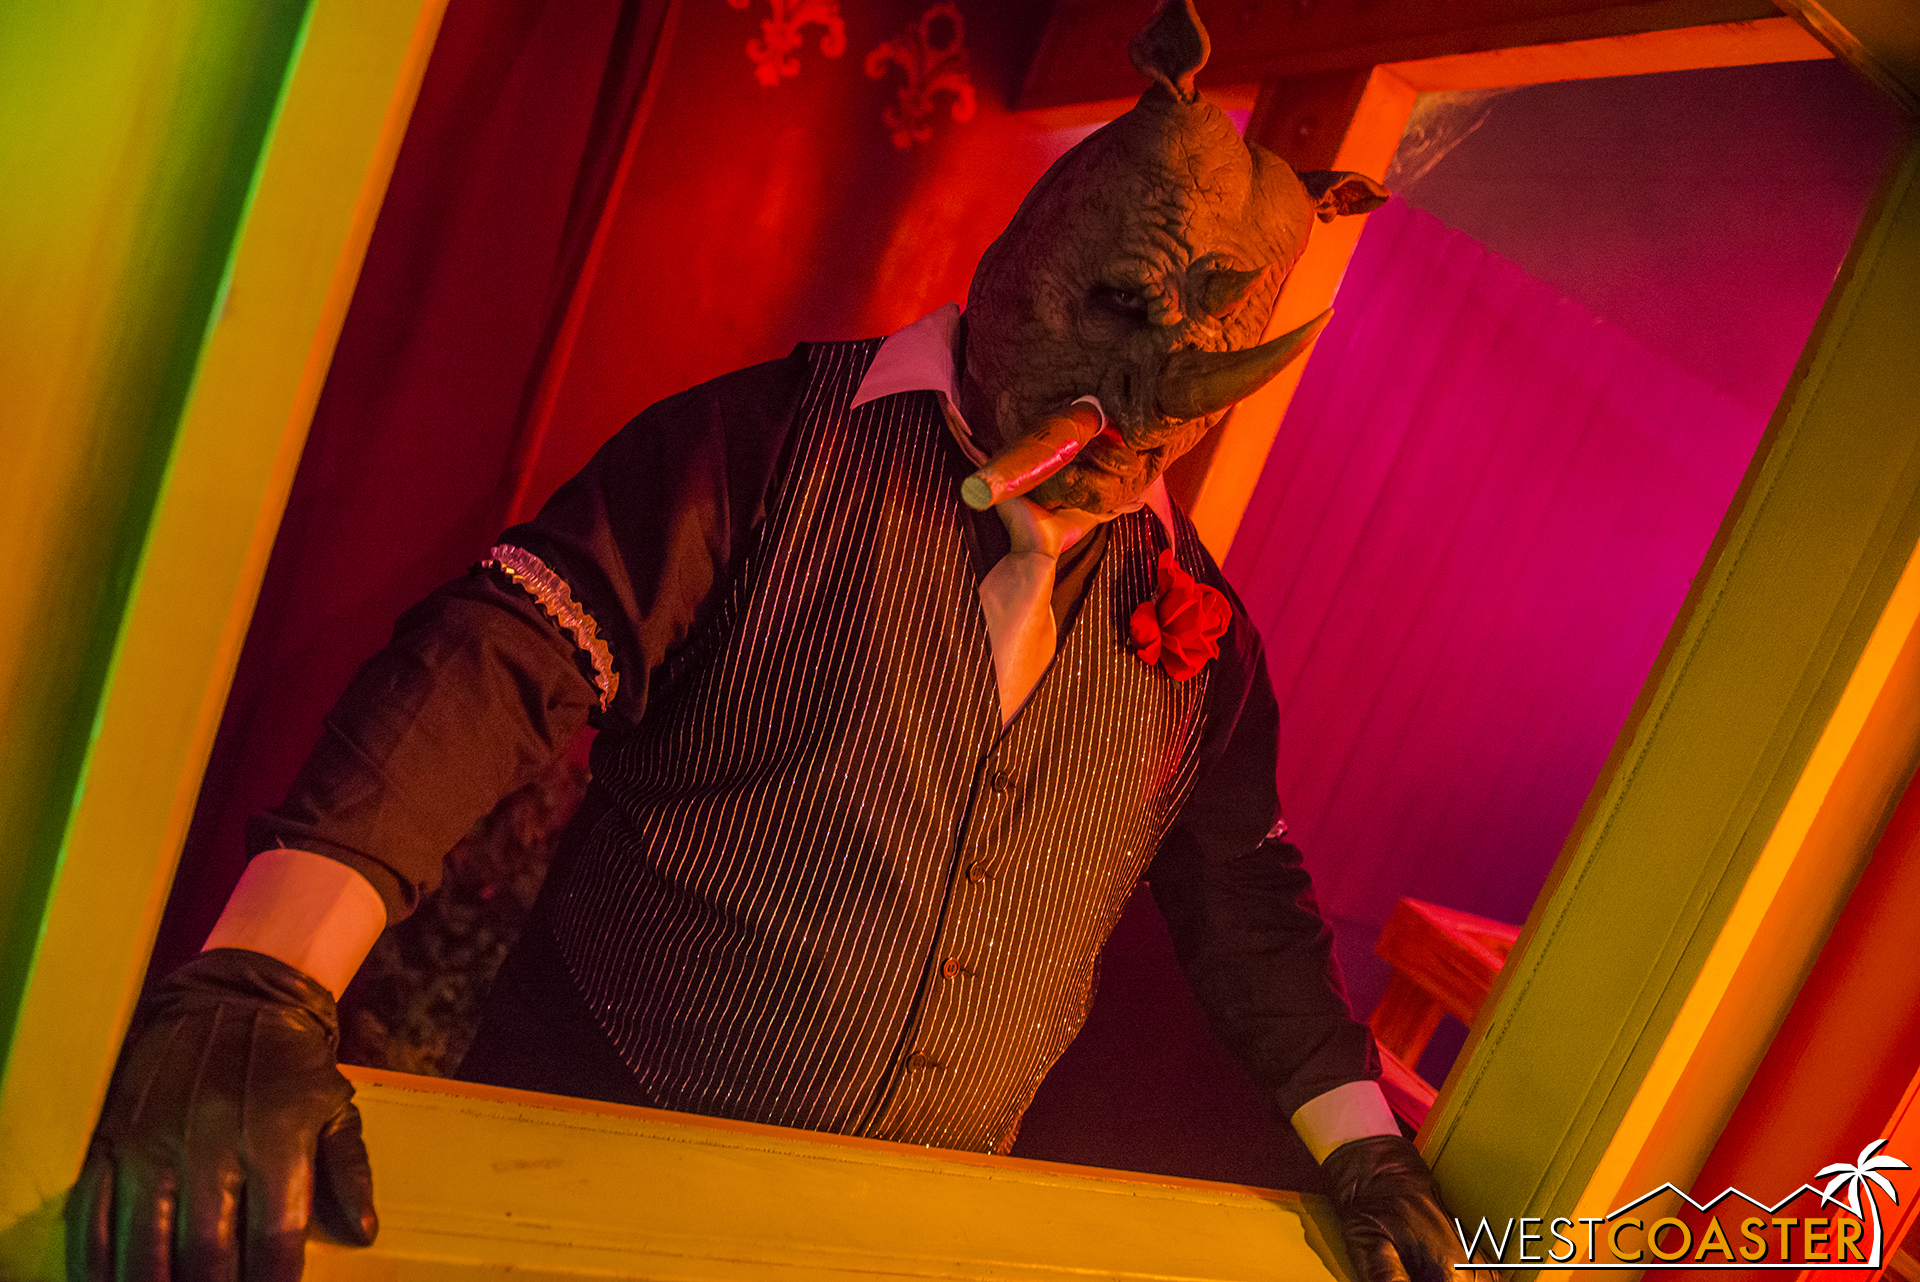 The maze seems to be run by a rather dapper rhino with a bit of an attitude.